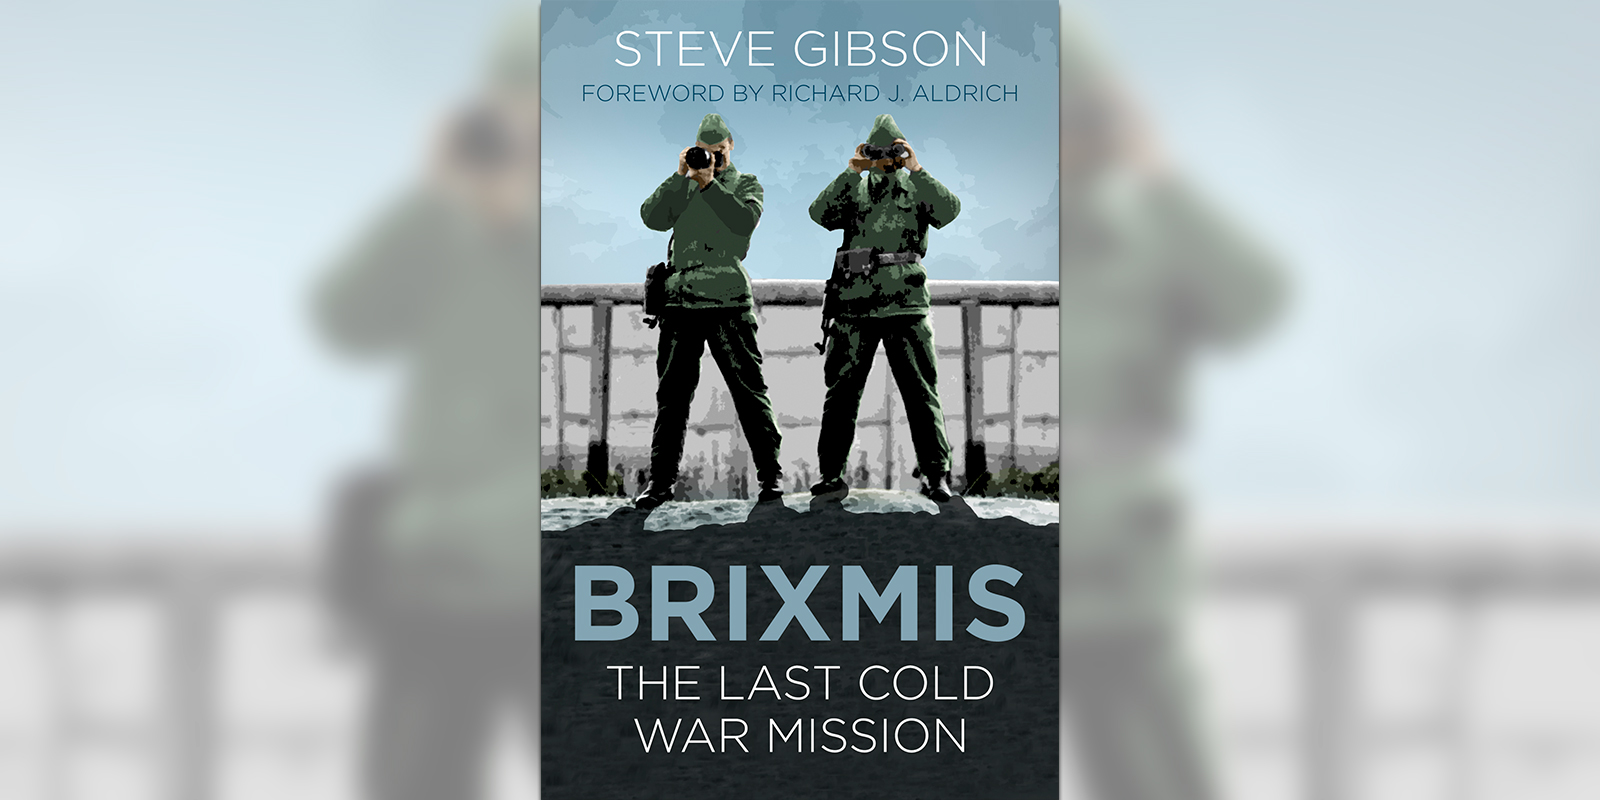 'Brixmis: The Last Cold War Mission' book cover